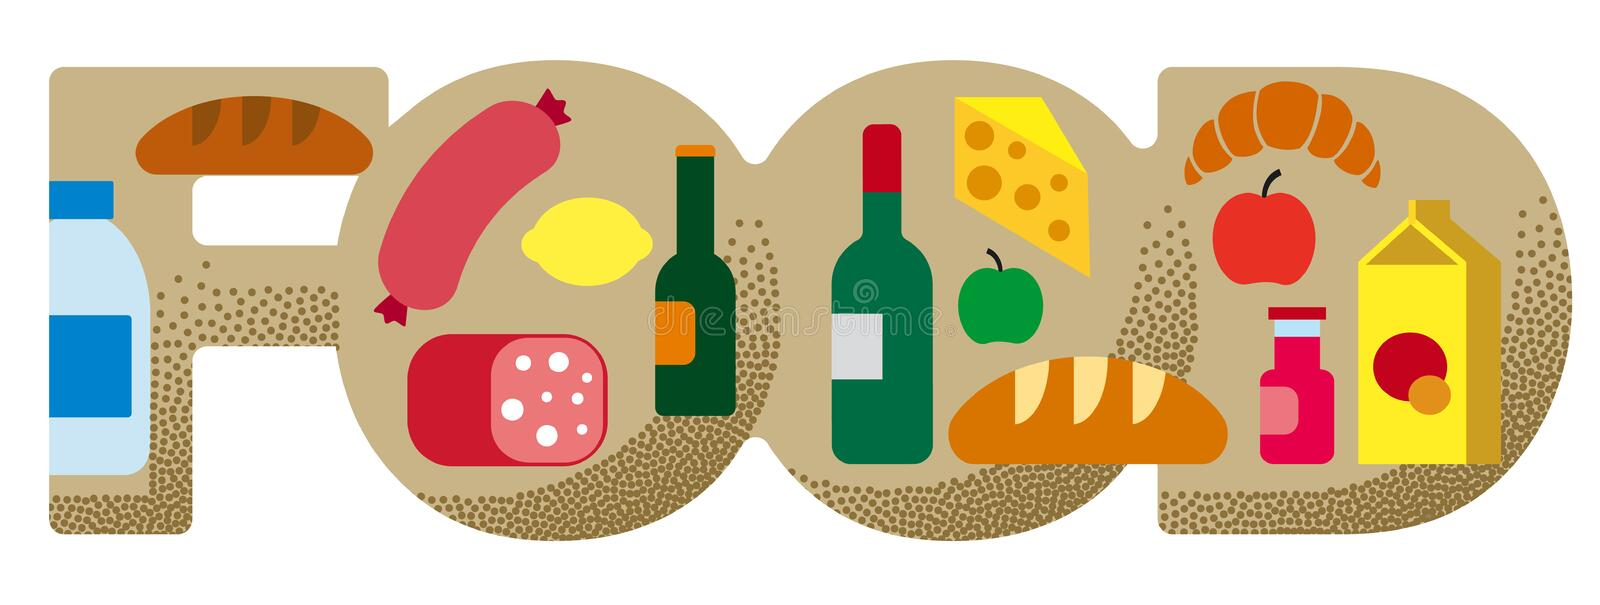 Food grocery banner stock illustration